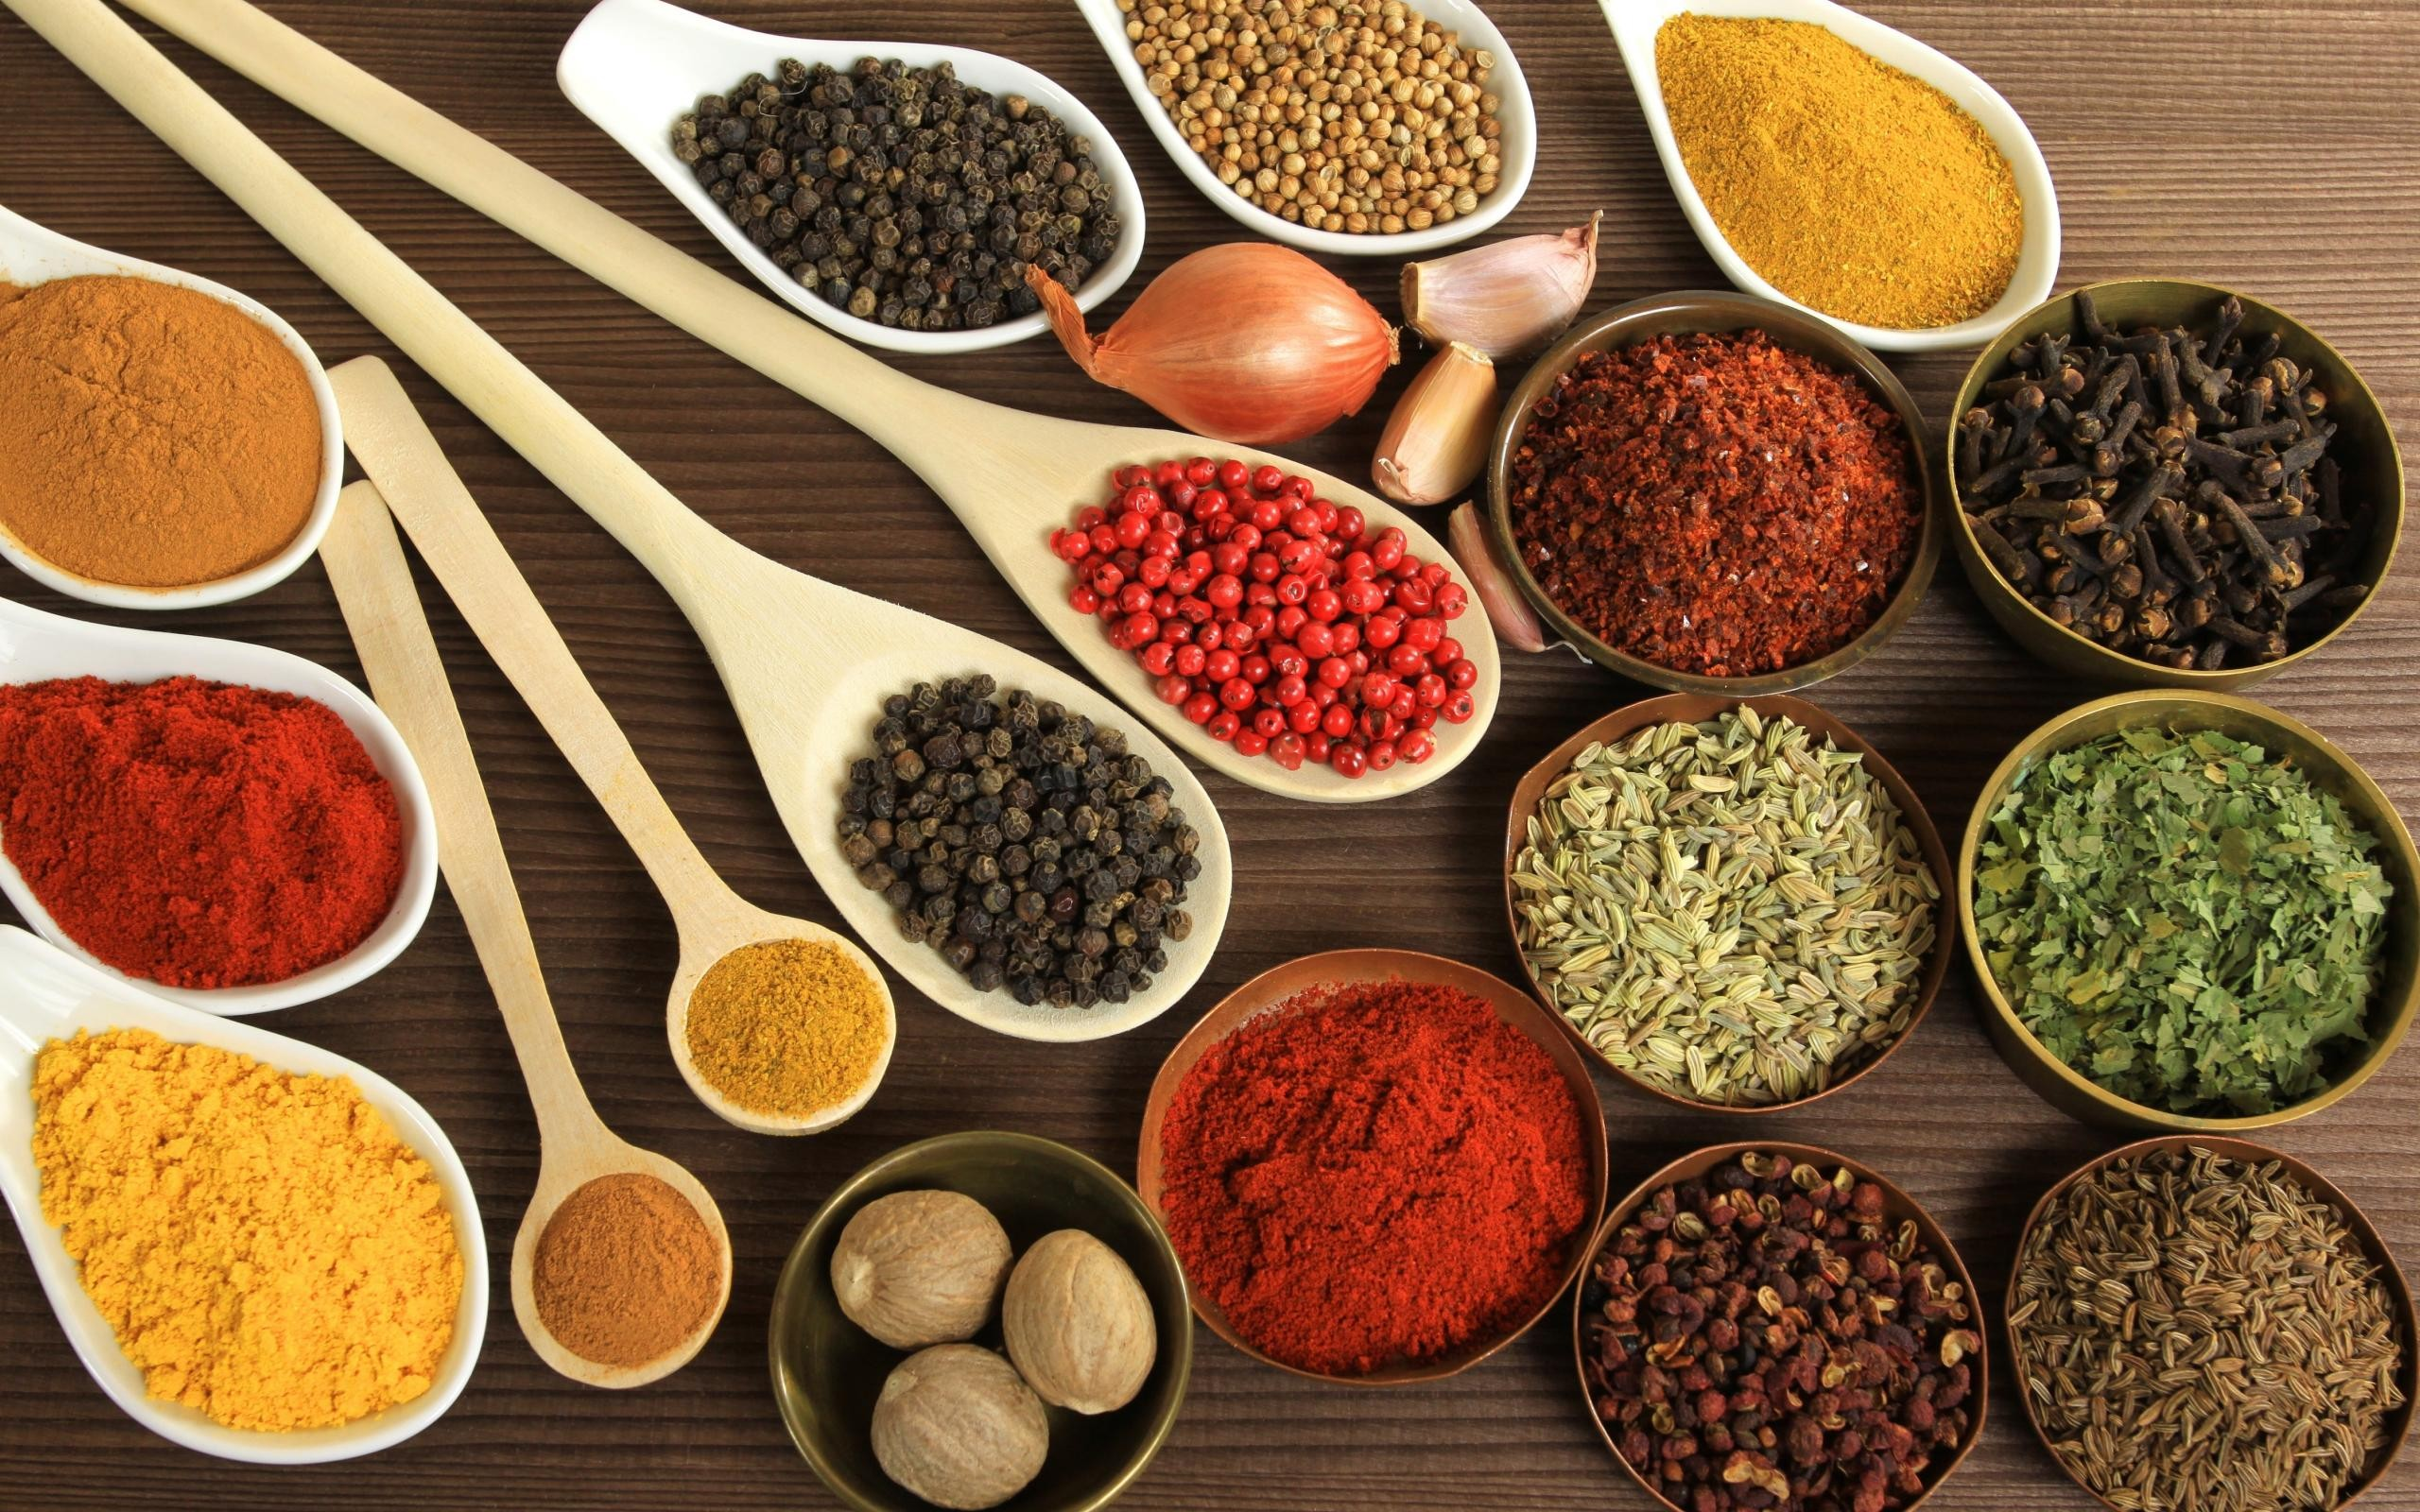 Use these spices every day in your diet.